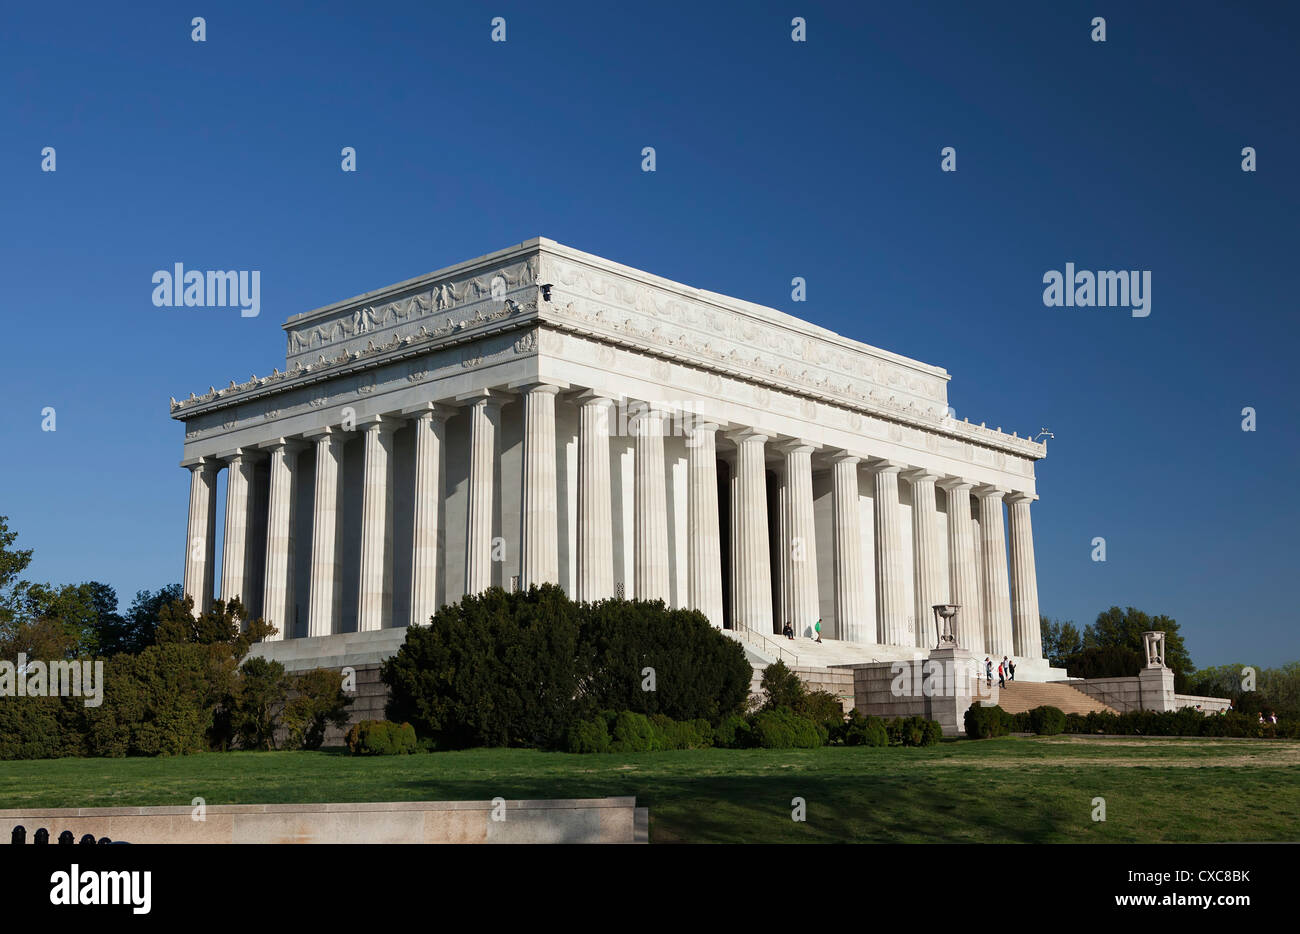 The Lincoln Memorial, Washington D.C., United States of America, North America - Stock Image